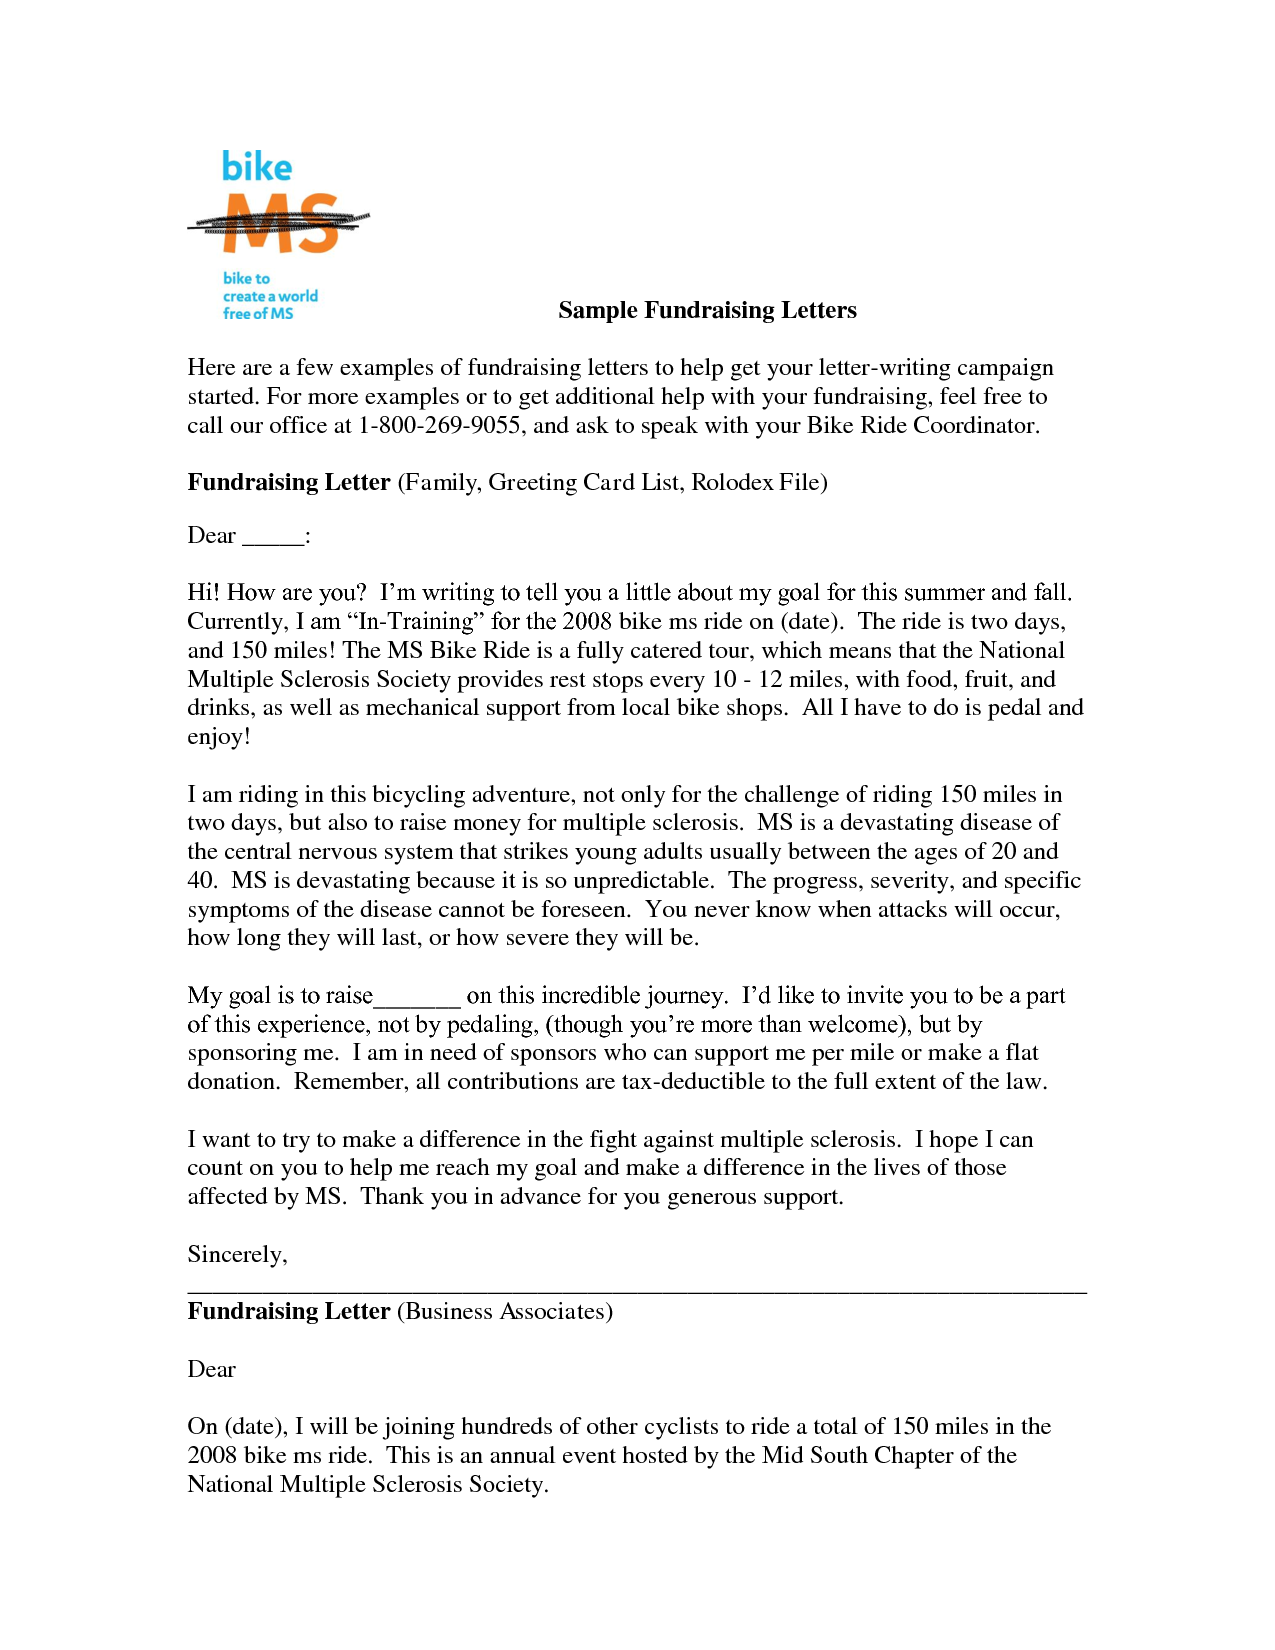 Great internship cover letters. Offers tips on how to